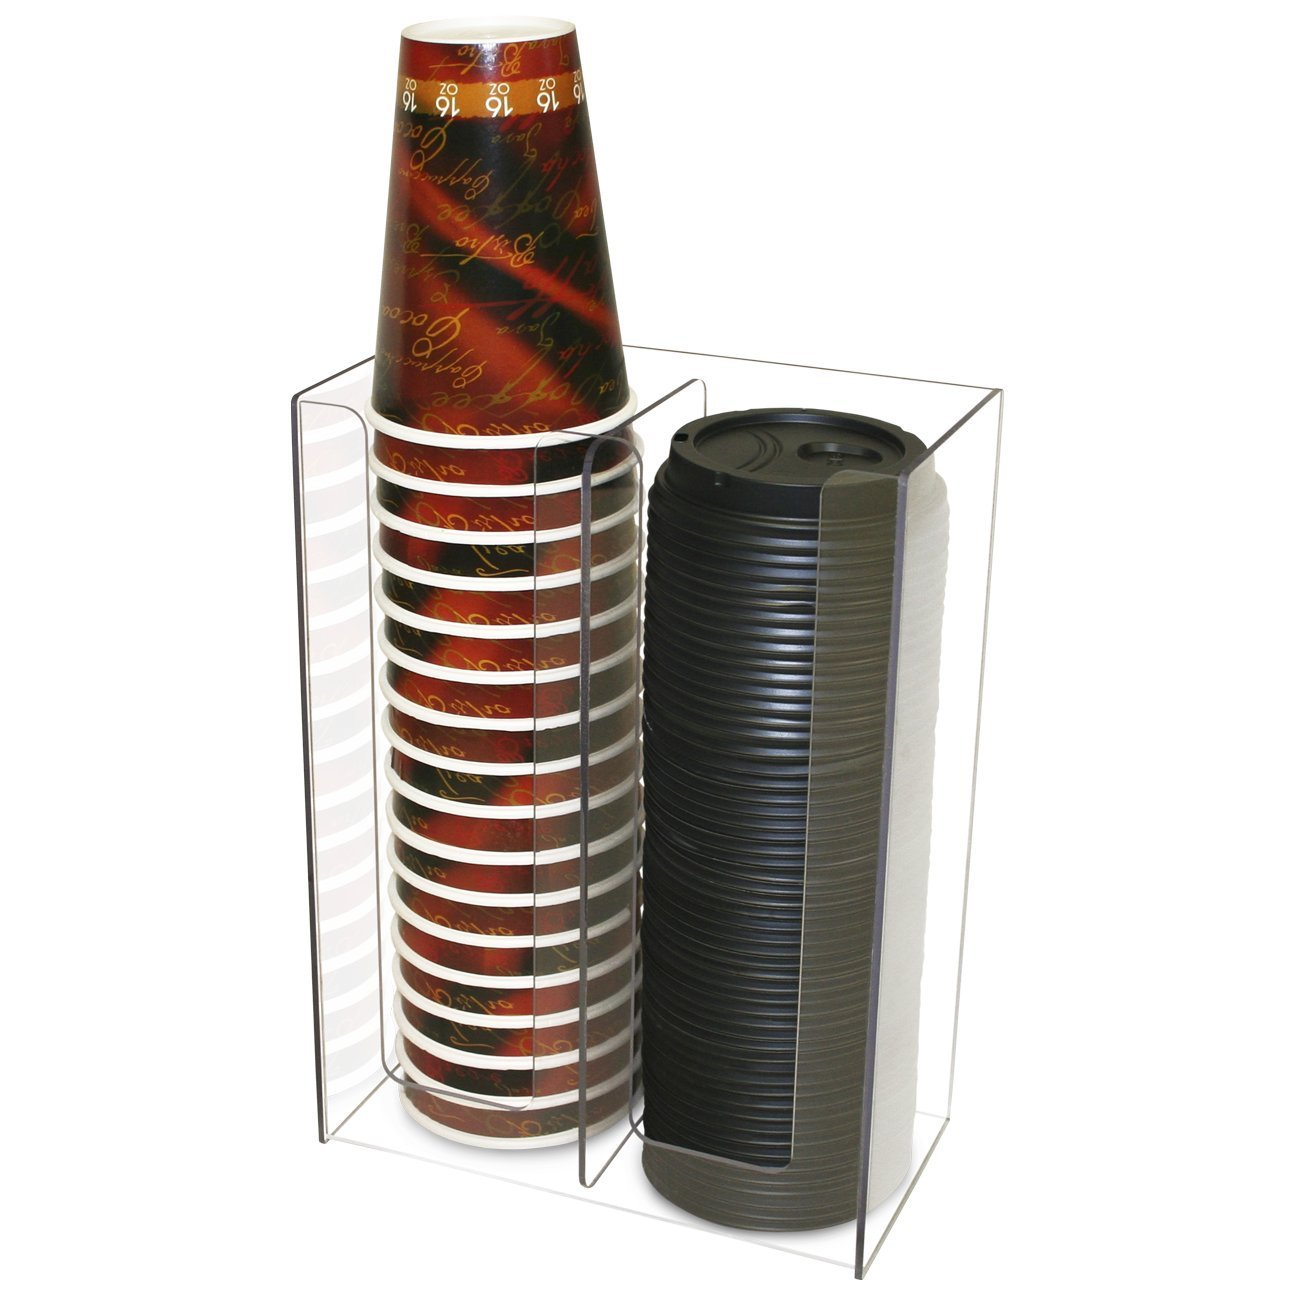 OKSLO Coffee or solo cup and lid holder dispenser and organizer, clear lexan counterto